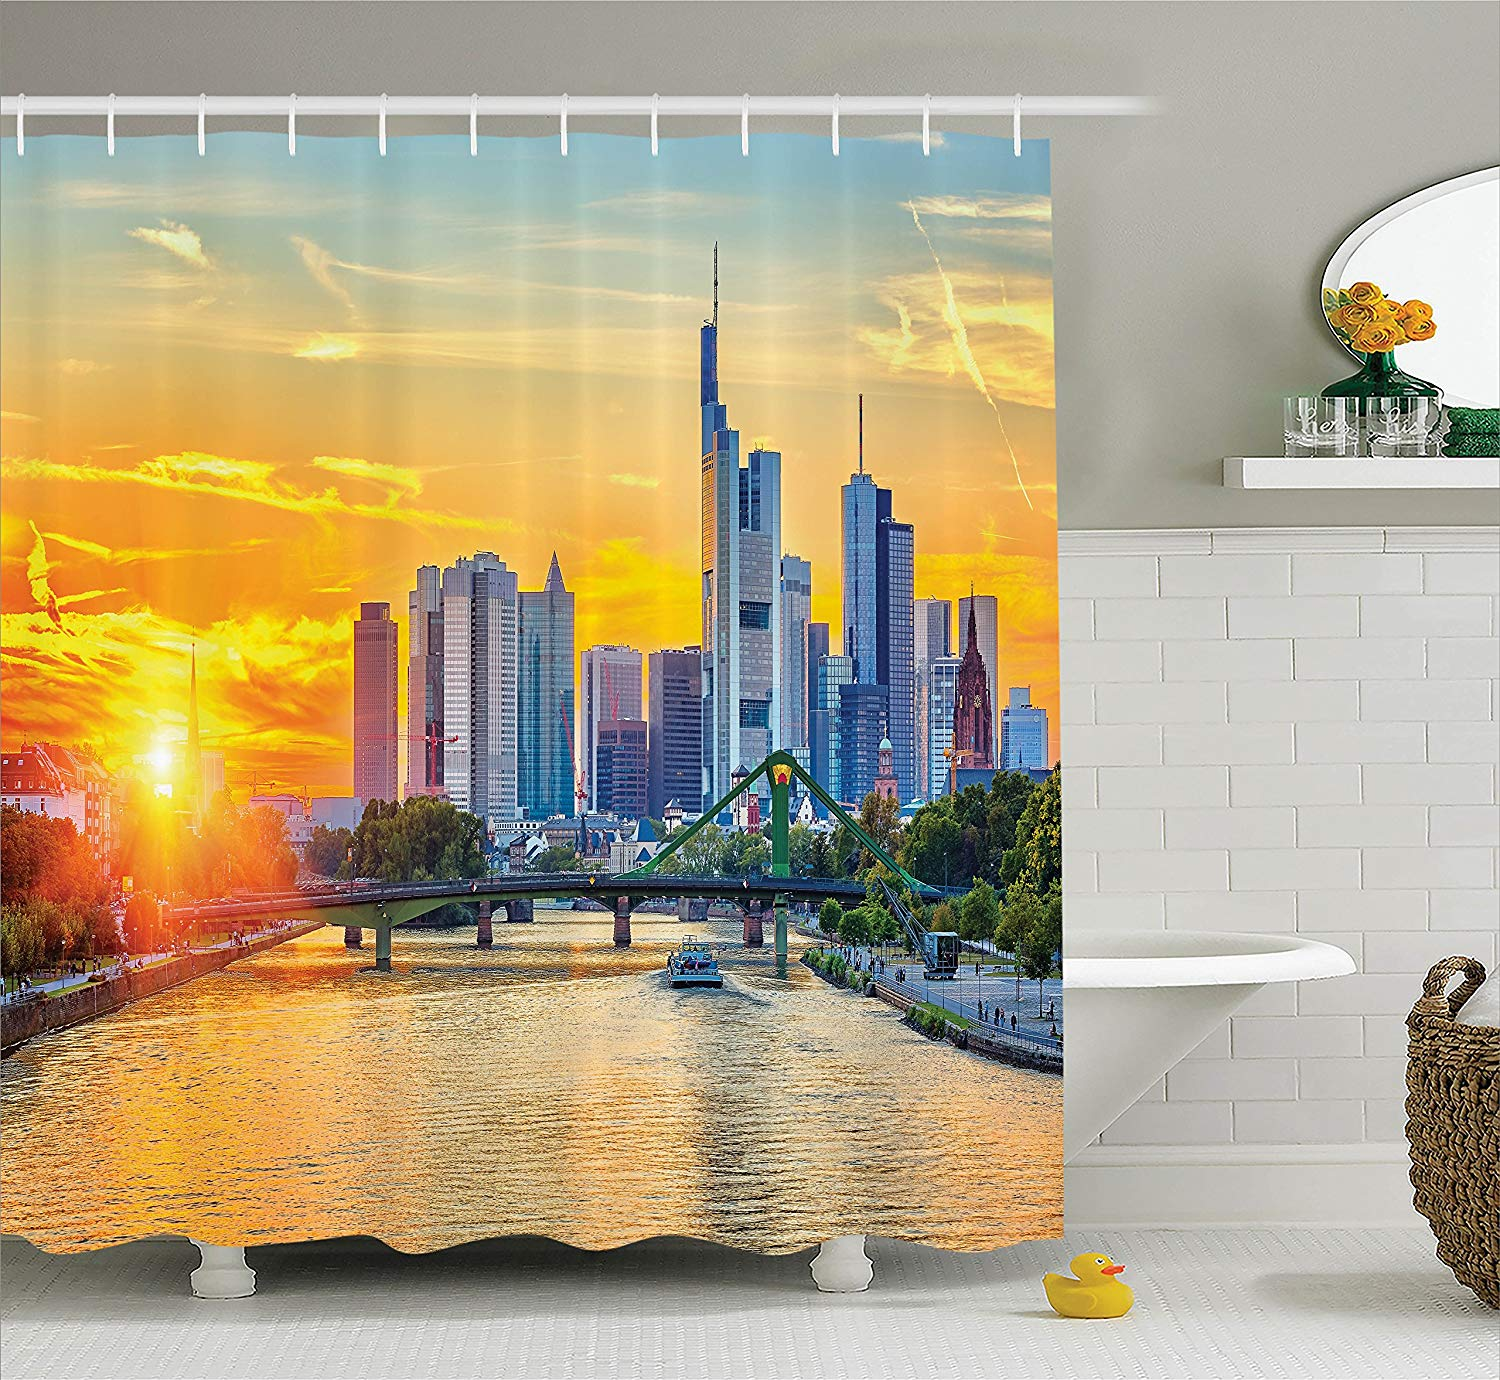 Wanderlust Decor Shower Curtain Frankfurt at Sunset Landmark Skyscraper Vibrant Colors Waterfront Image Polyester Fabric